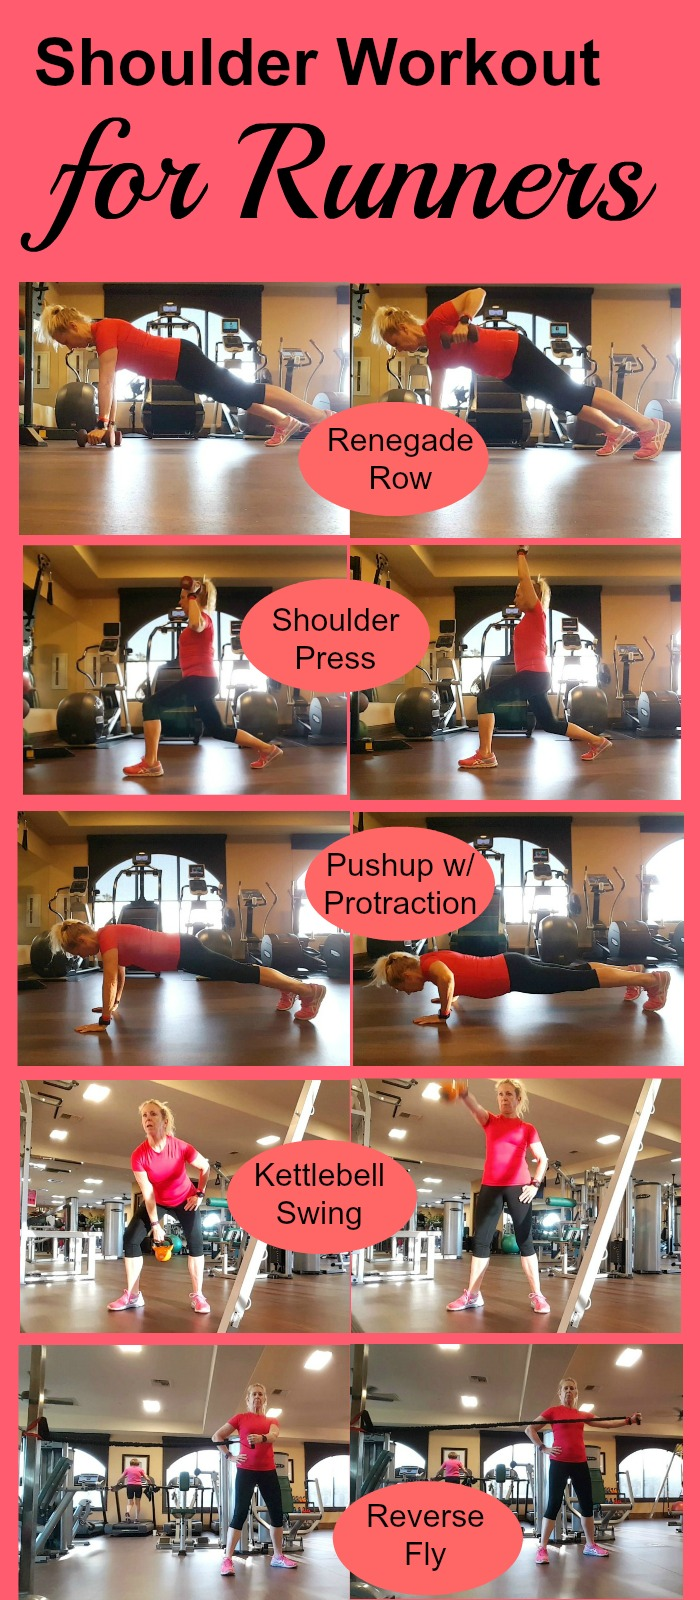 A lot of runner's workout focus on glutes and core, but don't forget about the upper back and shoulders. Here is an upper back and shoulder workout that will improve your posture and your running form, plus help avoid pain and injury.